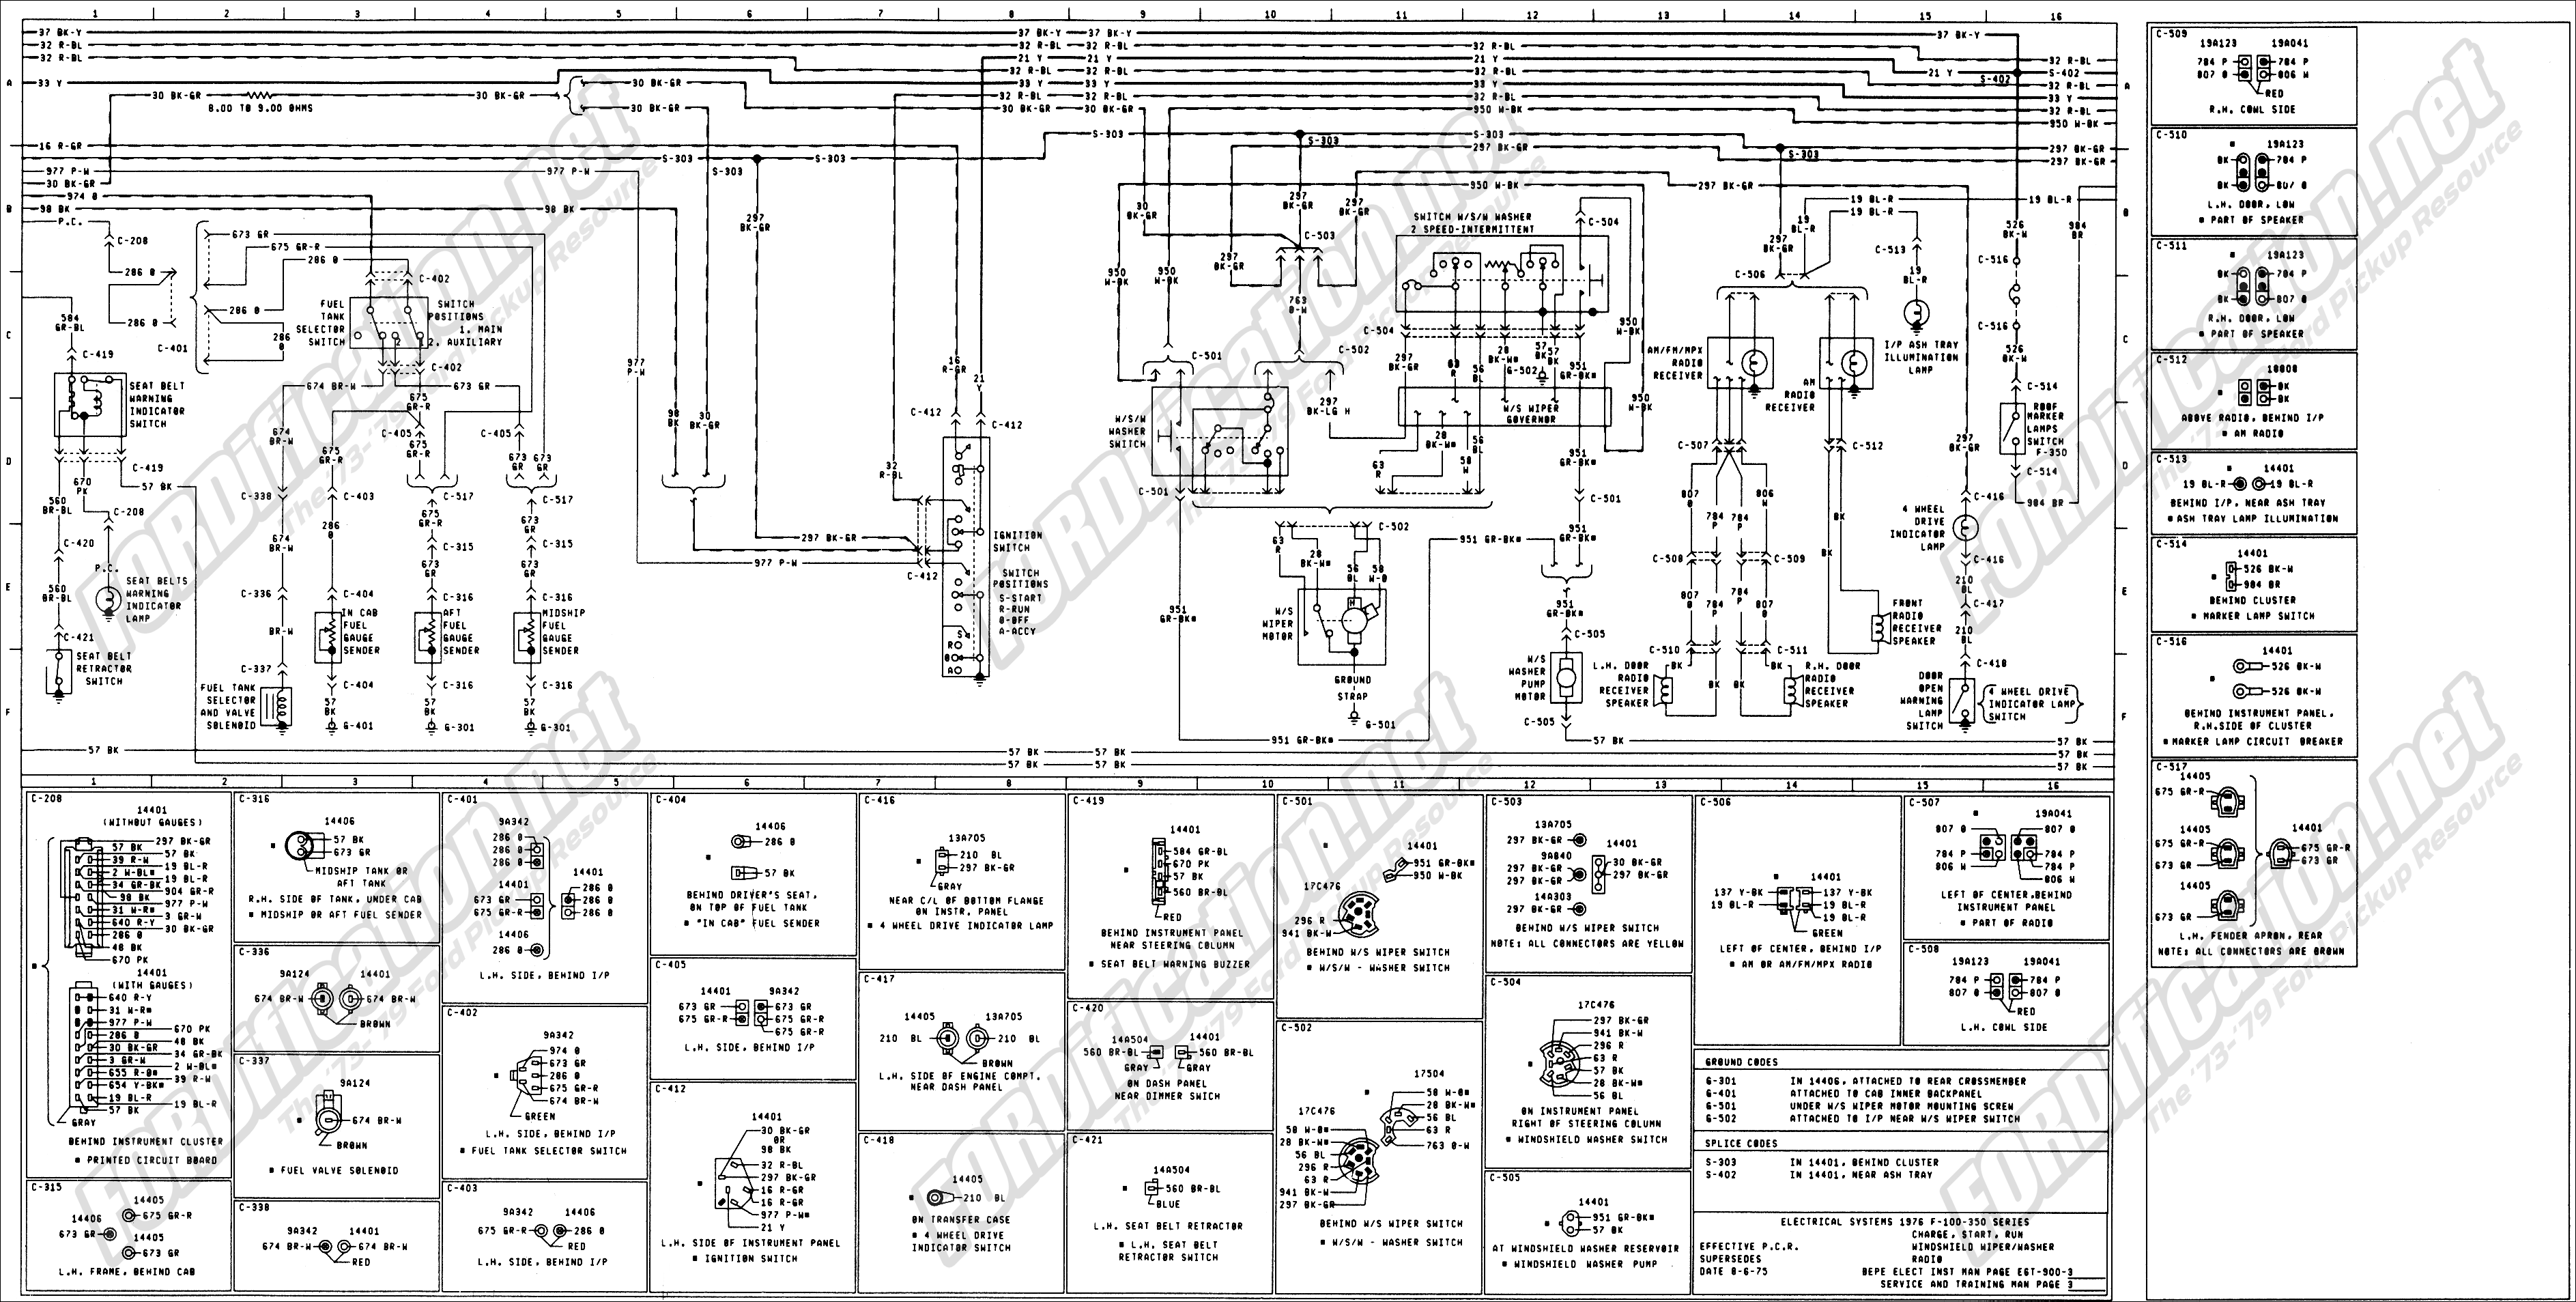 1973 1979 ford truck wiring diagrams schematics fordification net rh fordification net Ford Motorhome Wiring Diagram Ford E-450 Wiring-Diagram